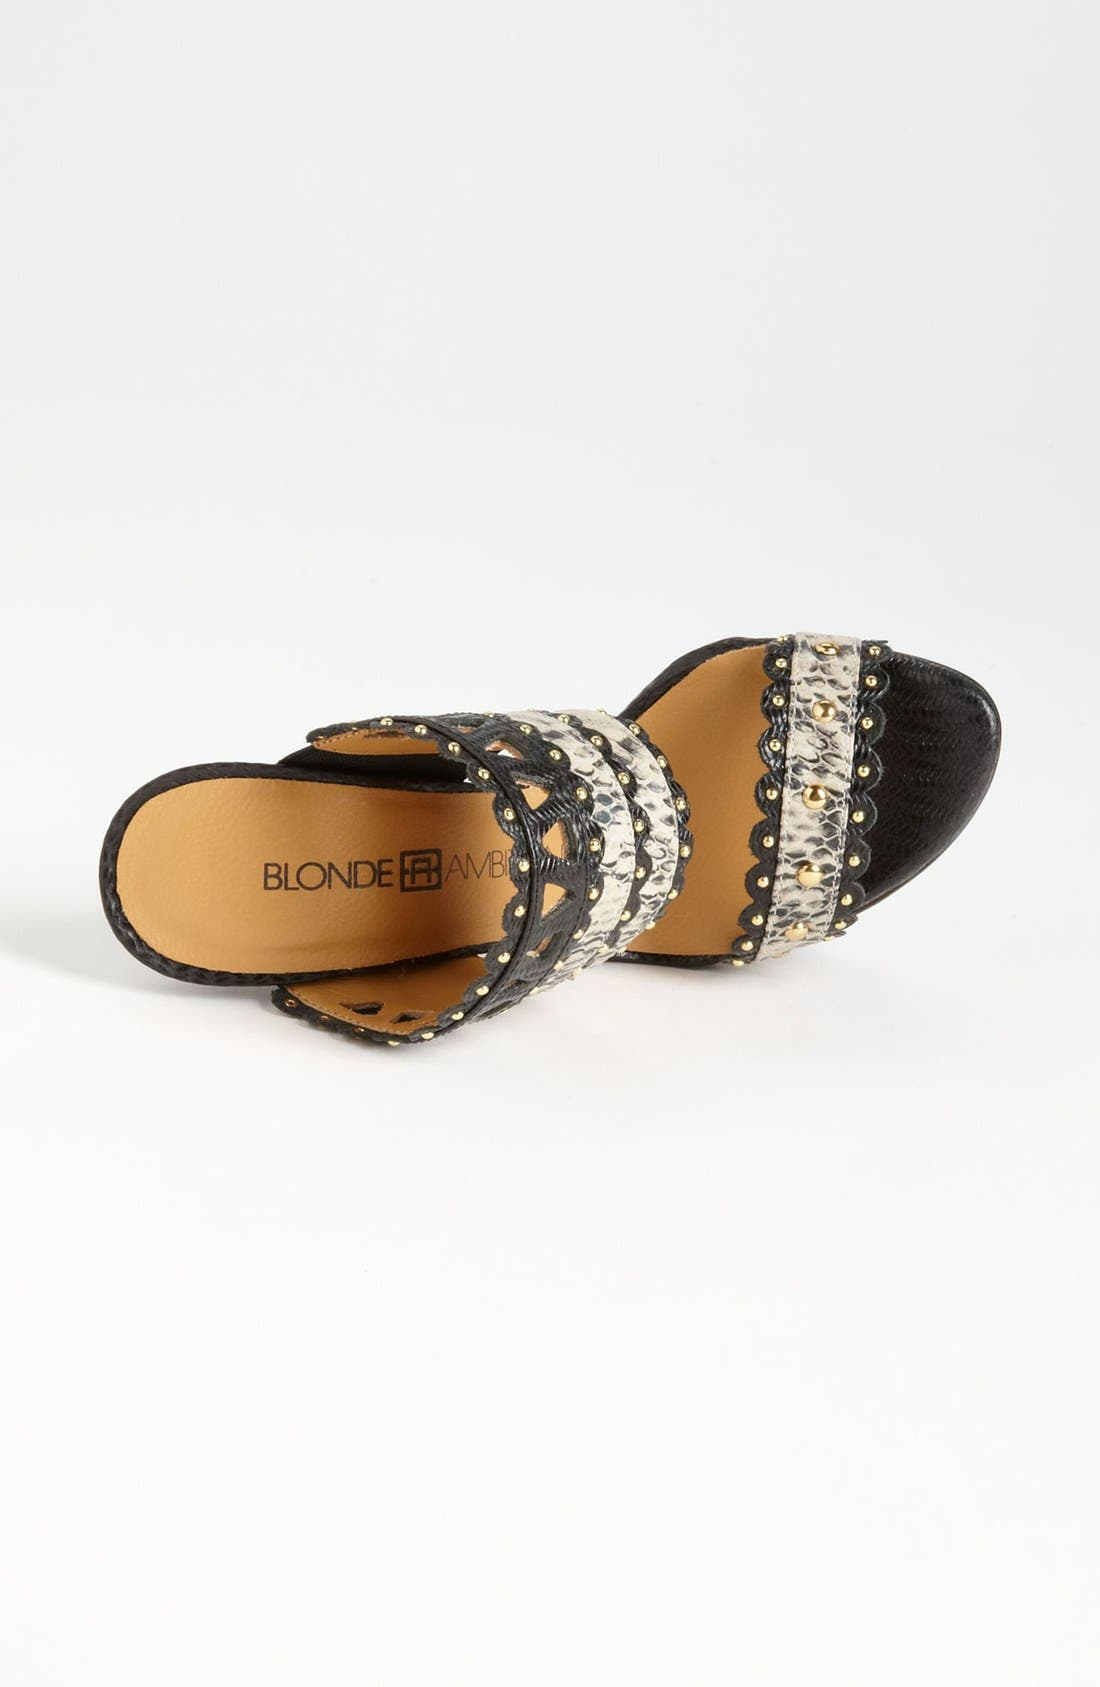 Alternate Image 3  - Blonde Ambition 'Royce' Sandal